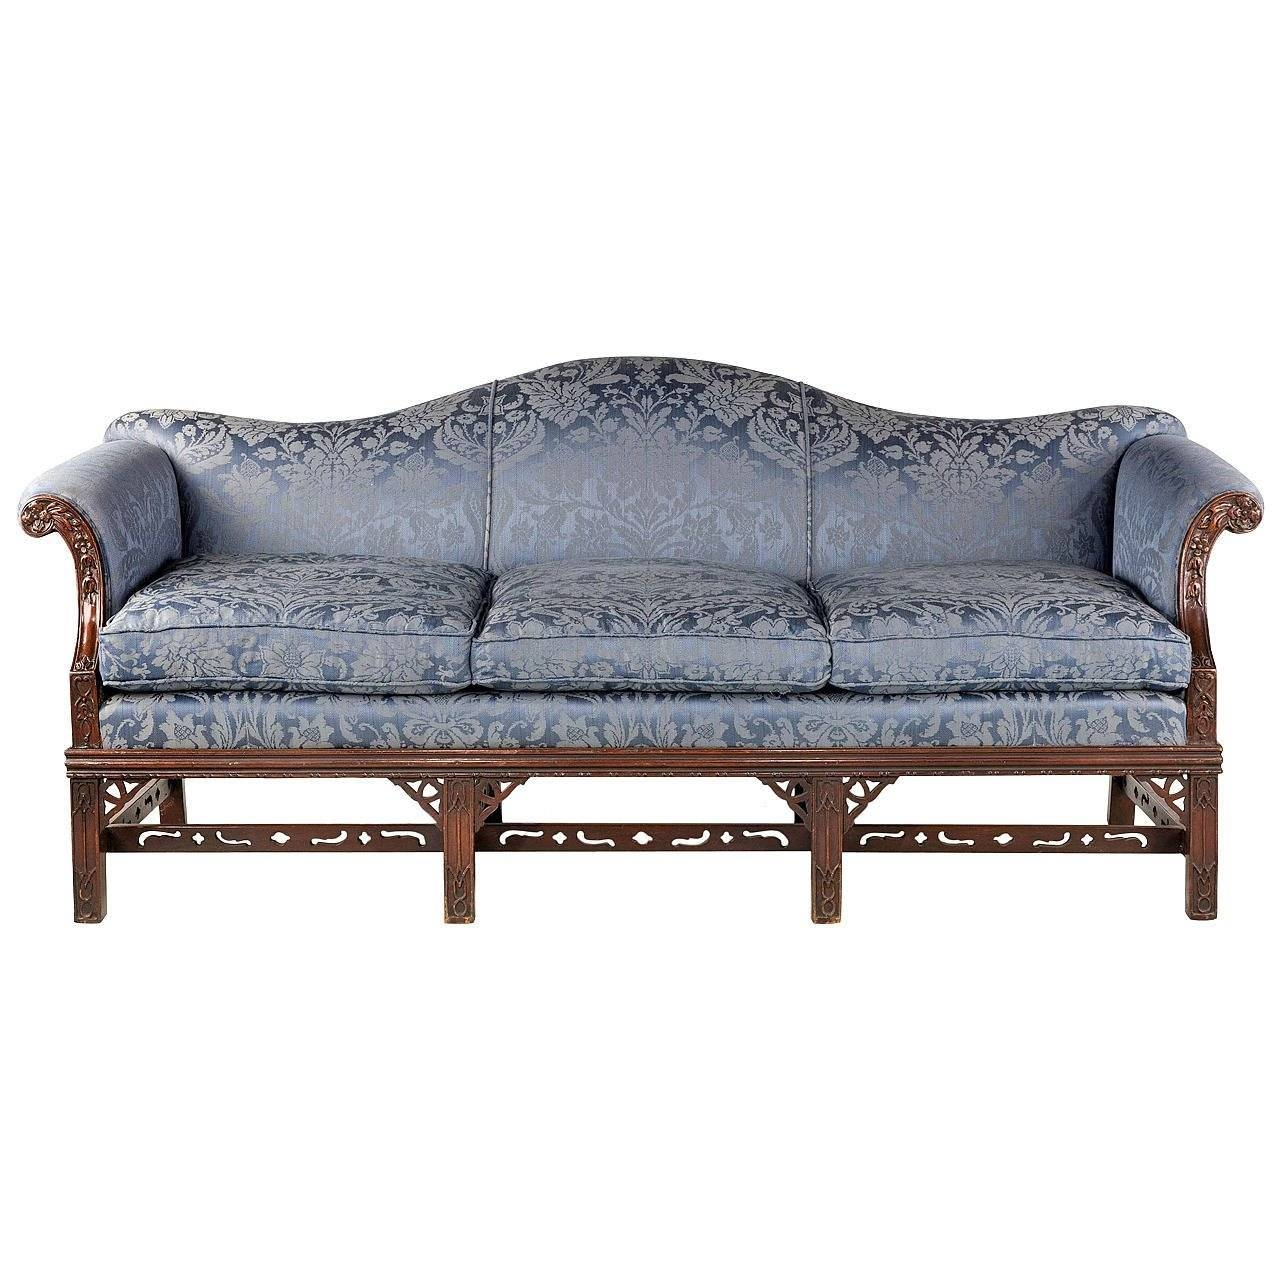 Chippendale Style Mahogany Framed Camel Back Sofa At 1Stdibs in Chippendale Camelback Sofas (Image 8 of 15)